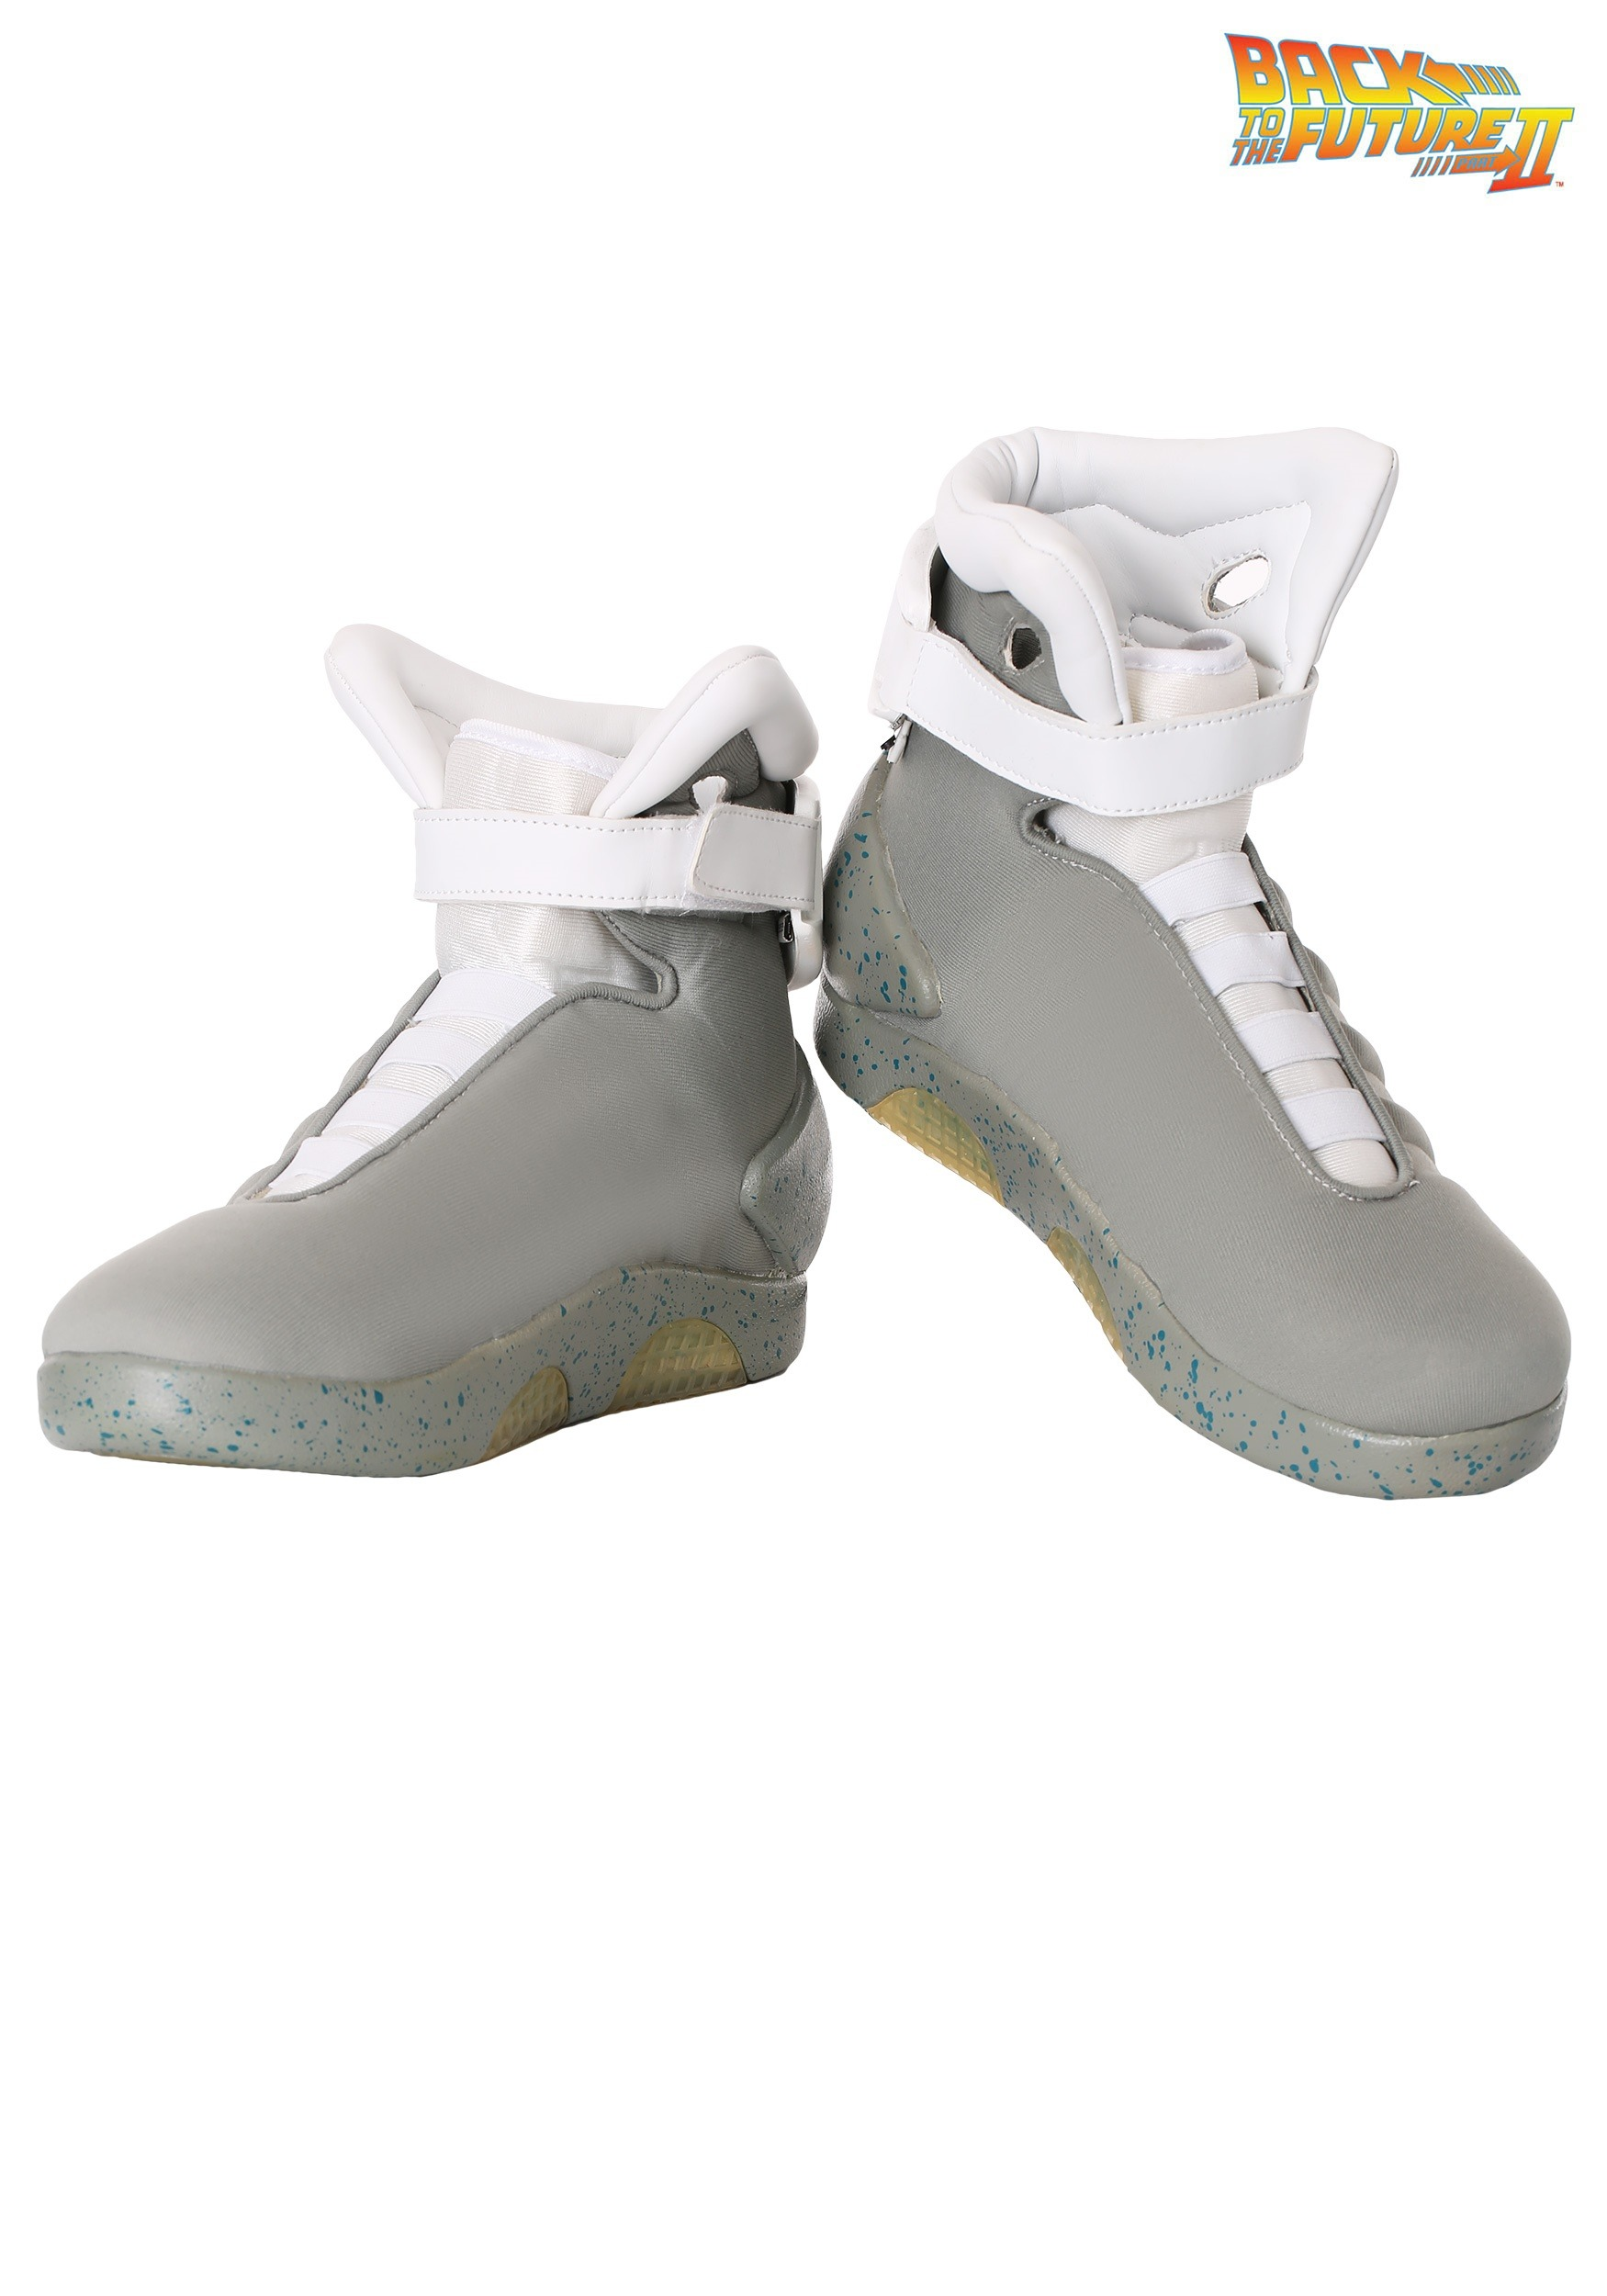 official photos f632c 1dd2d Back to the Future 2 Light Up Shoes